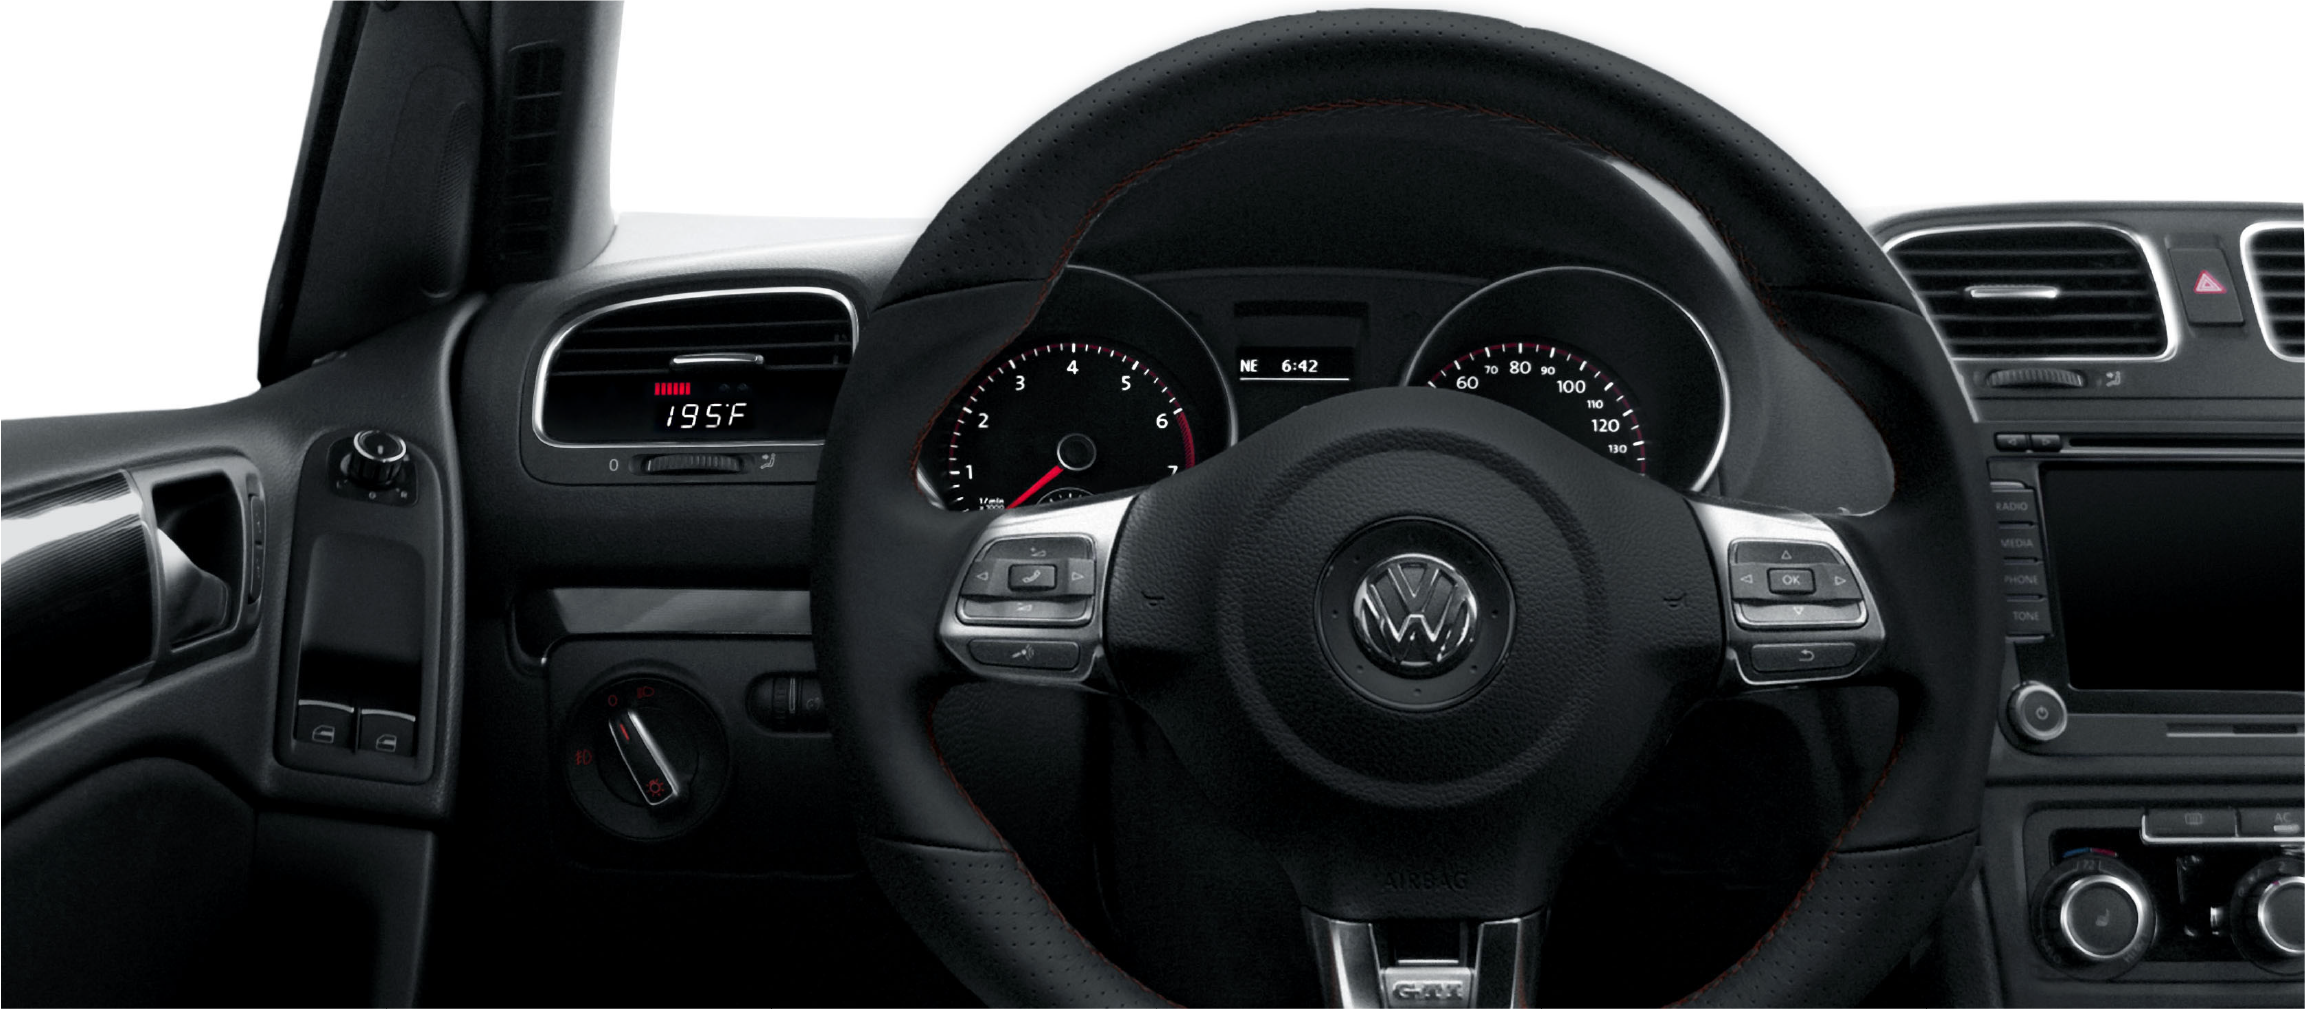 Vw Polo Instrument Cluster Fault